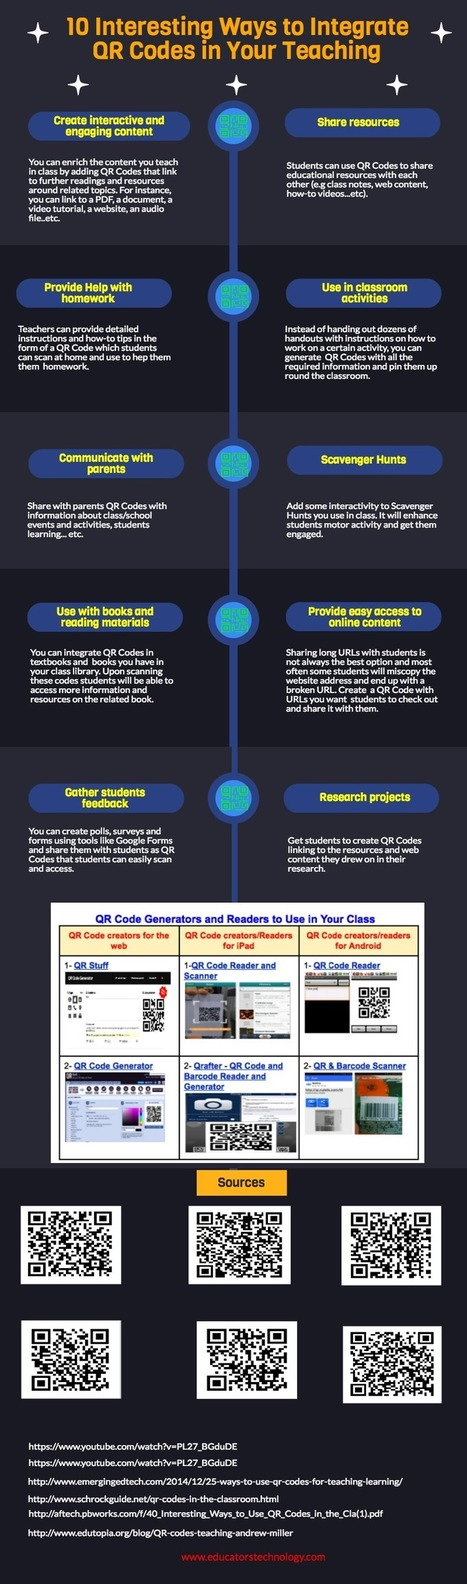 10 Interesting Ways to Integrate QR Codes in Your Teaching (Infographic) ~ Educational Technology and Mobile Learning | library | Scoop.it